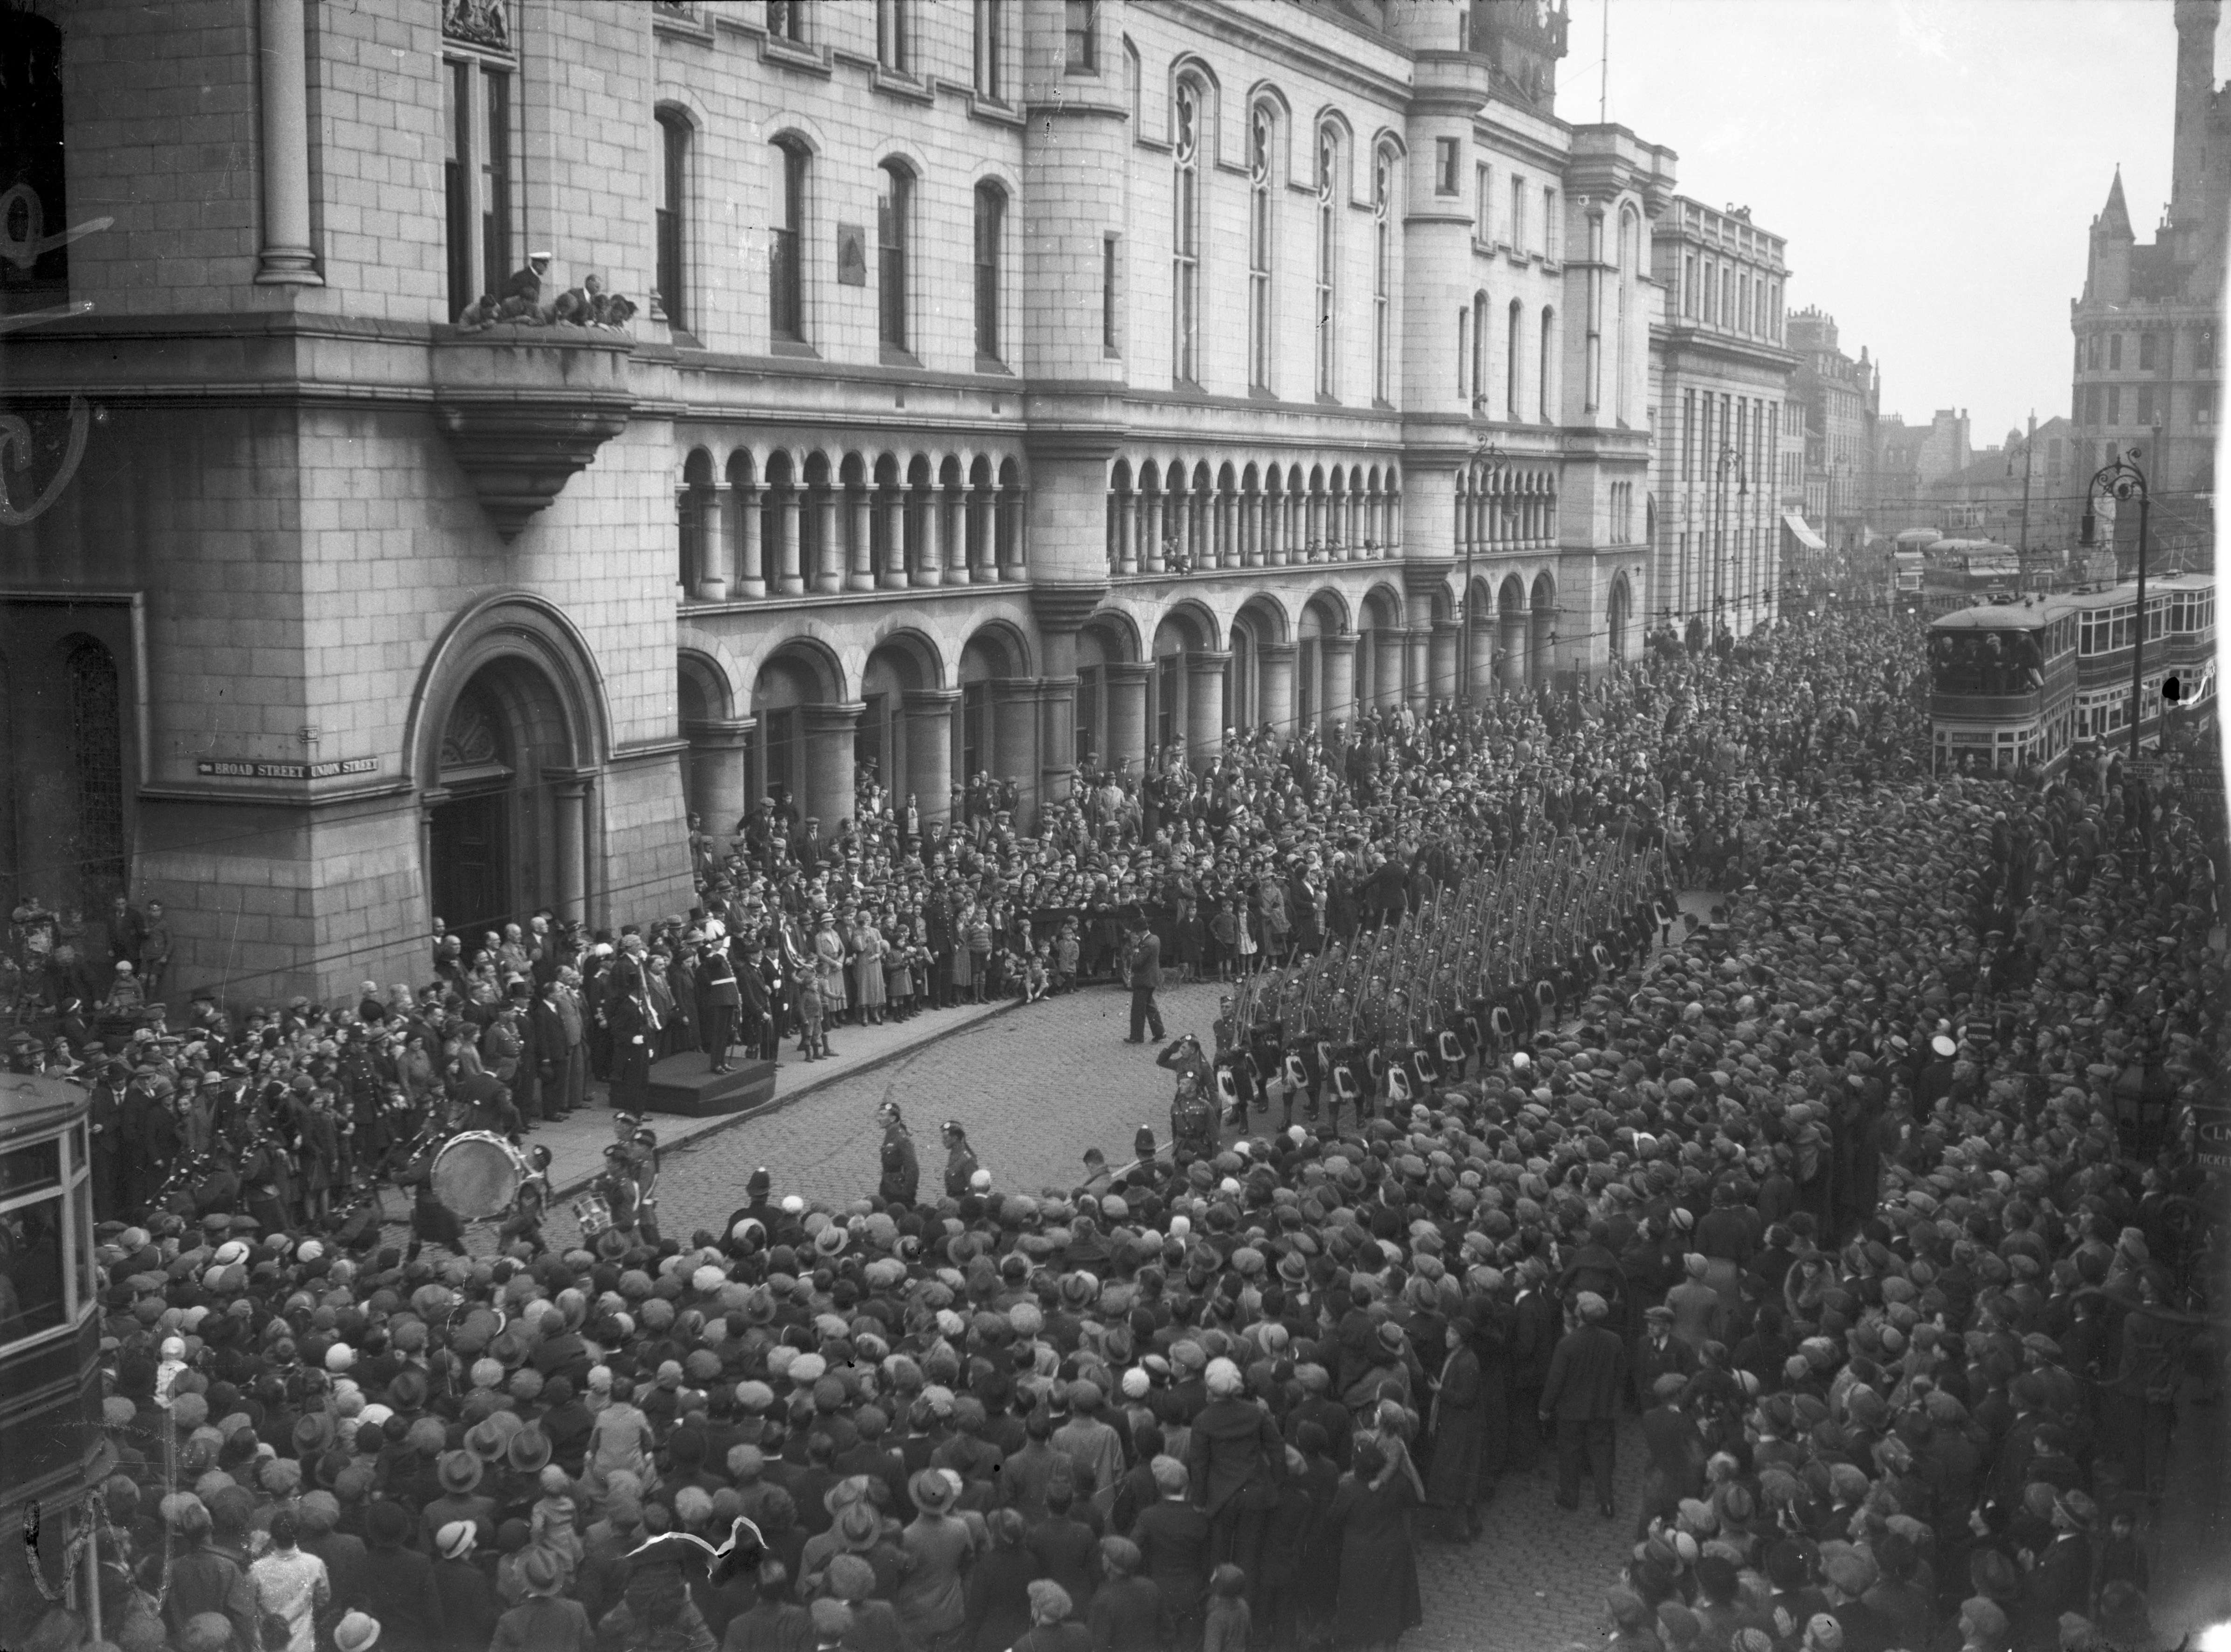 The Gordon Highlanders marching through Aberdeen on their way from their Castlehill Barracks to their new barracks at Bridge of Don, in 1935